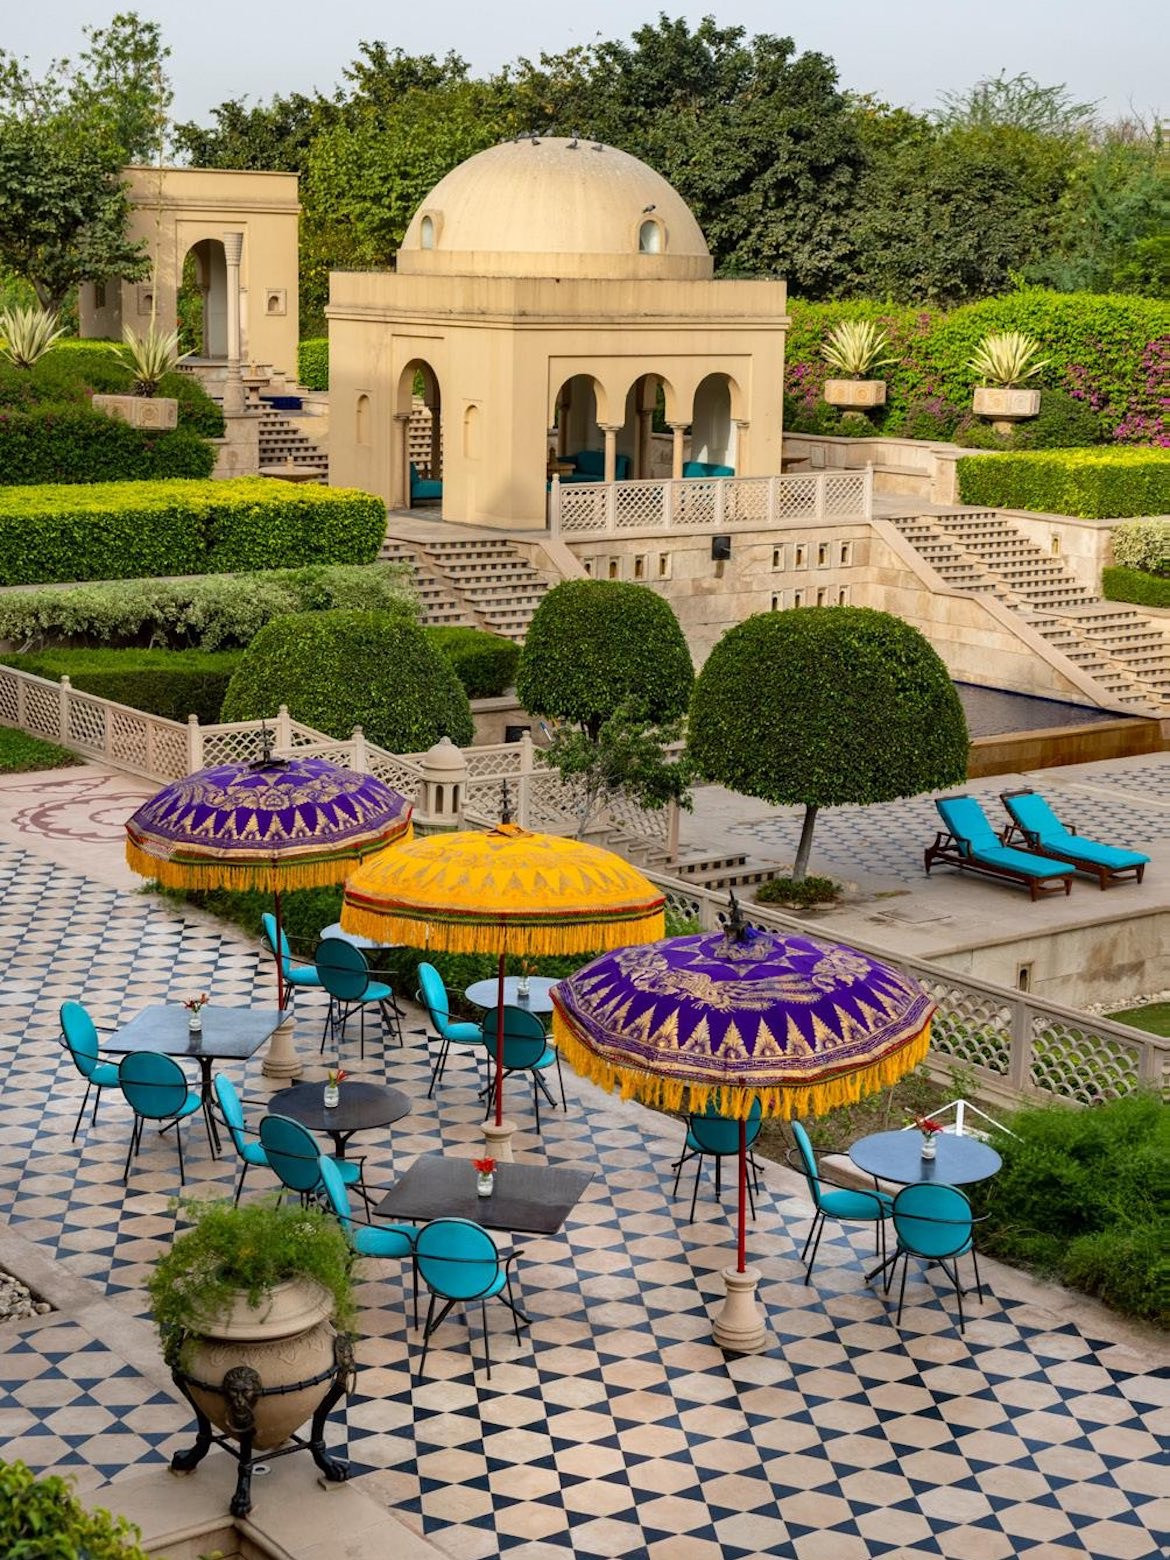 Colourful umbrellas and blue seats line the terrace at Bellevue at The Oberoi.